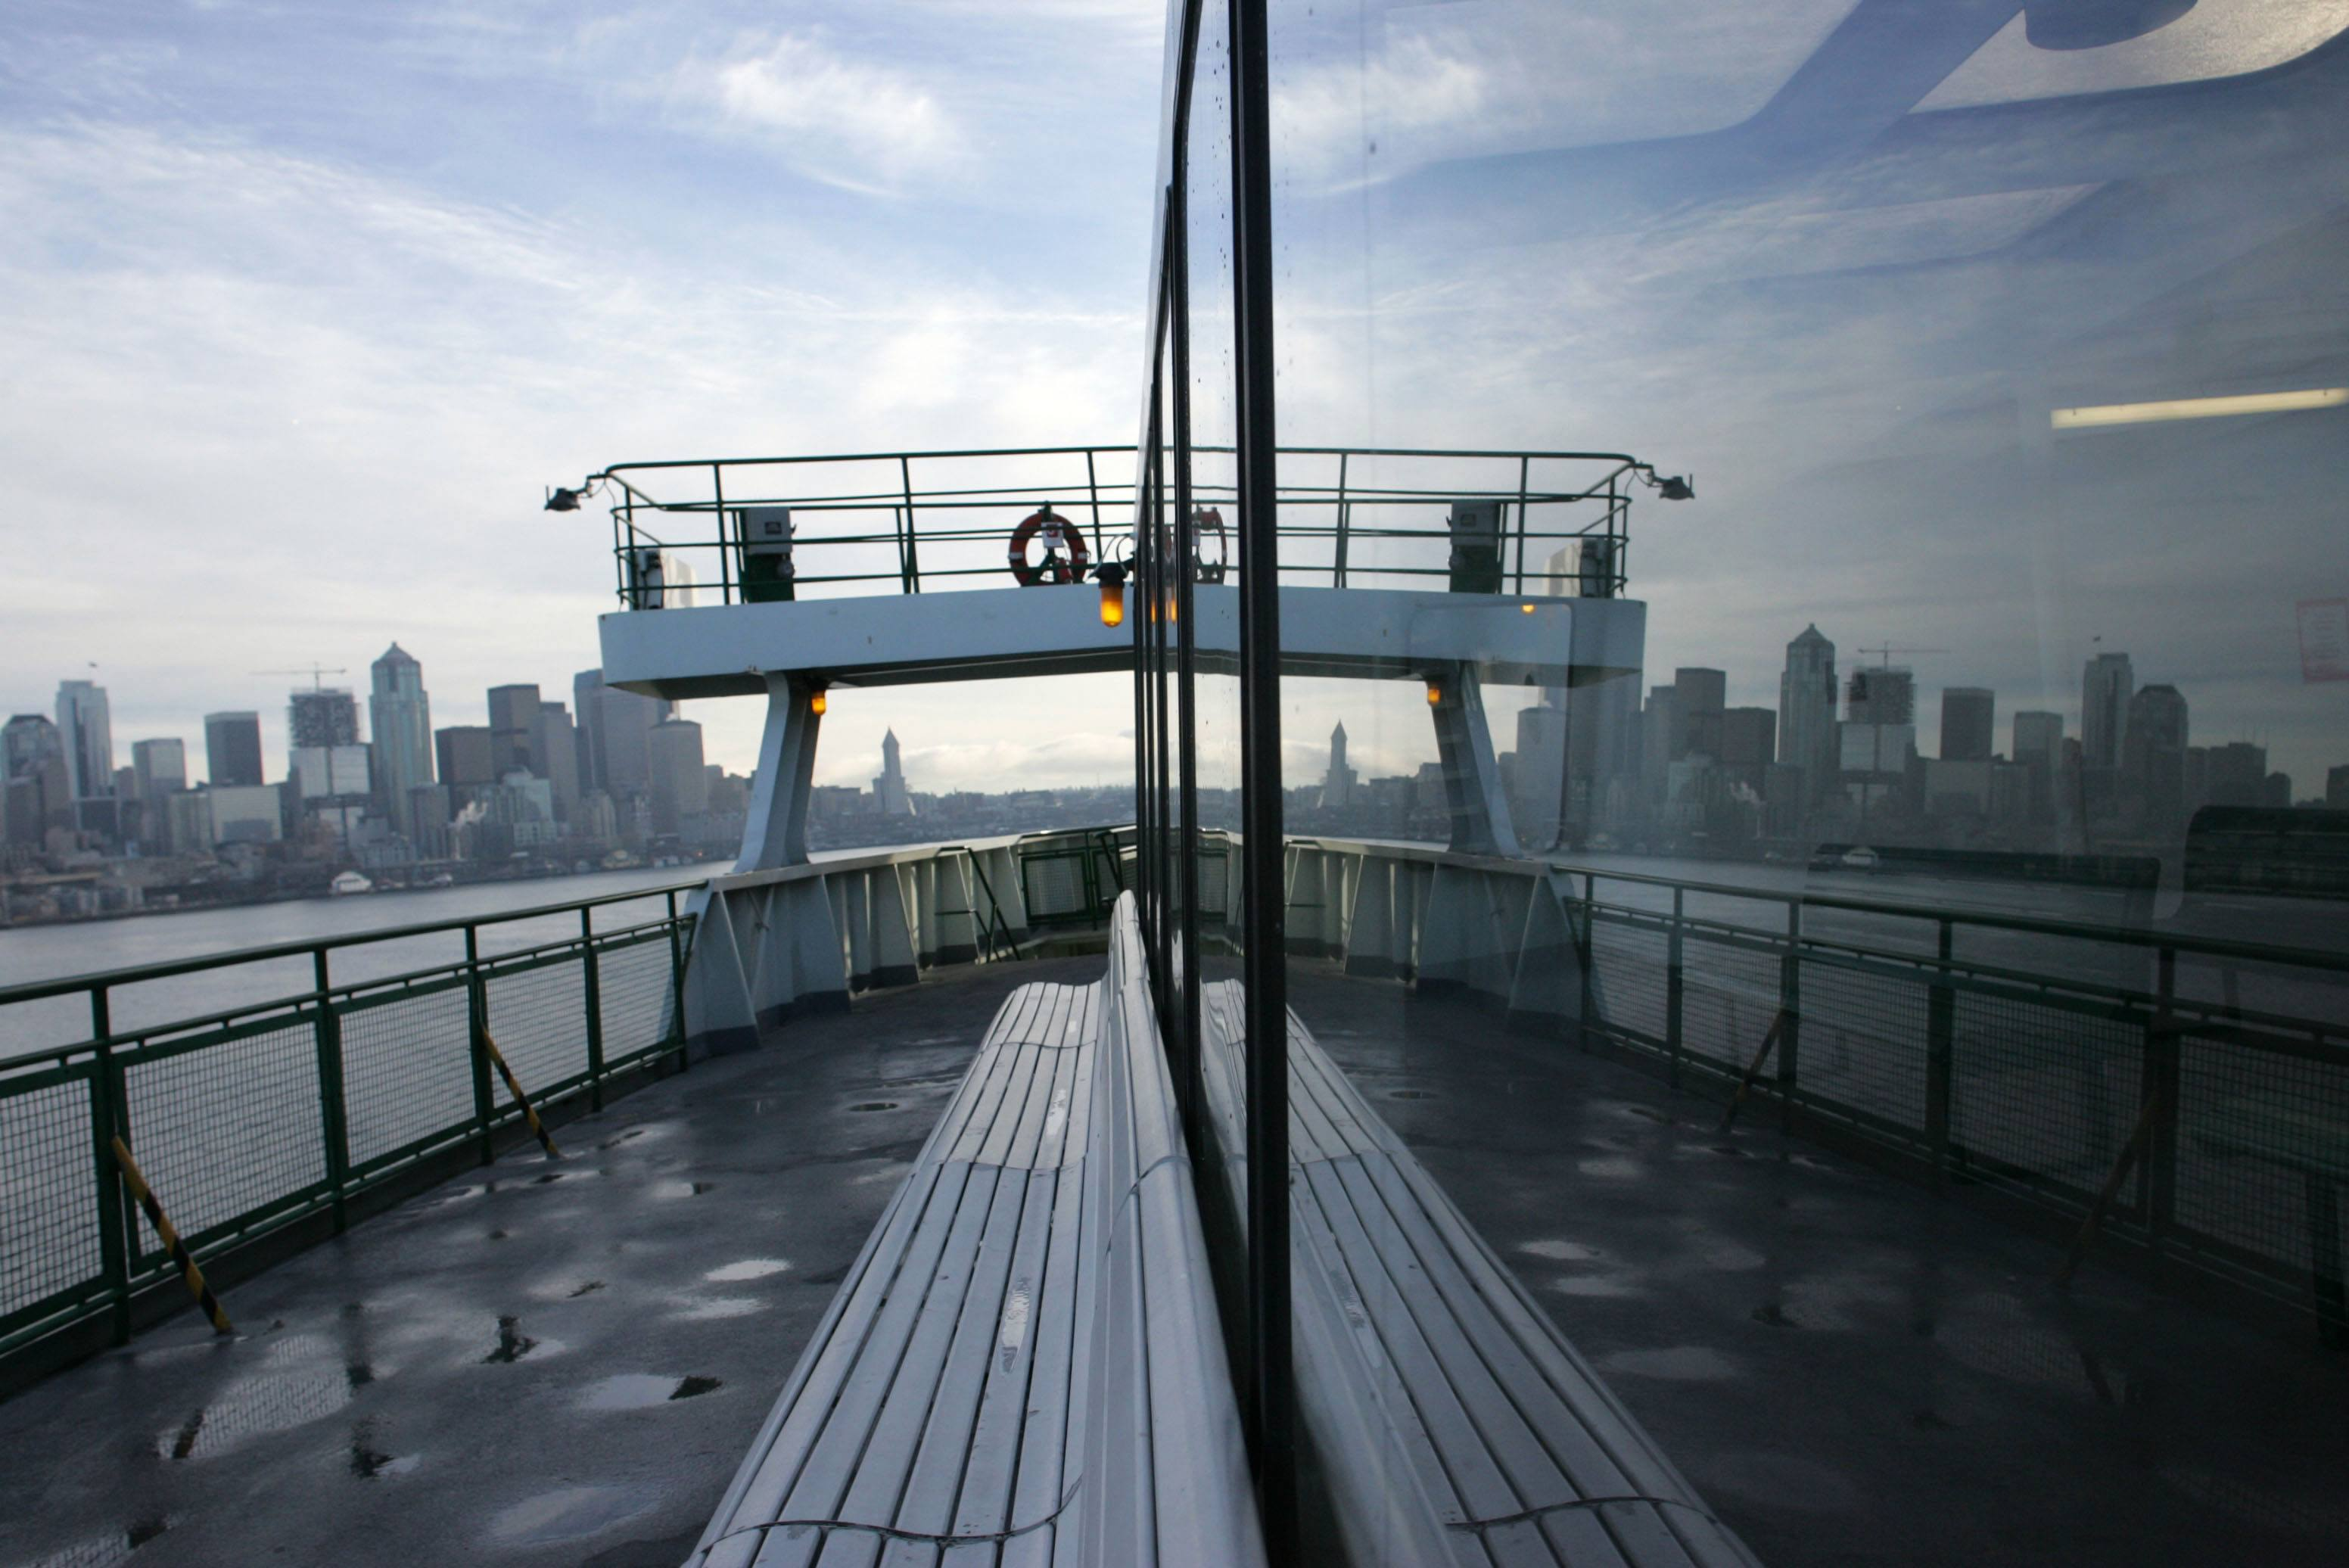 The Seattle skyline is reflected in the window of a Washington State Ferry